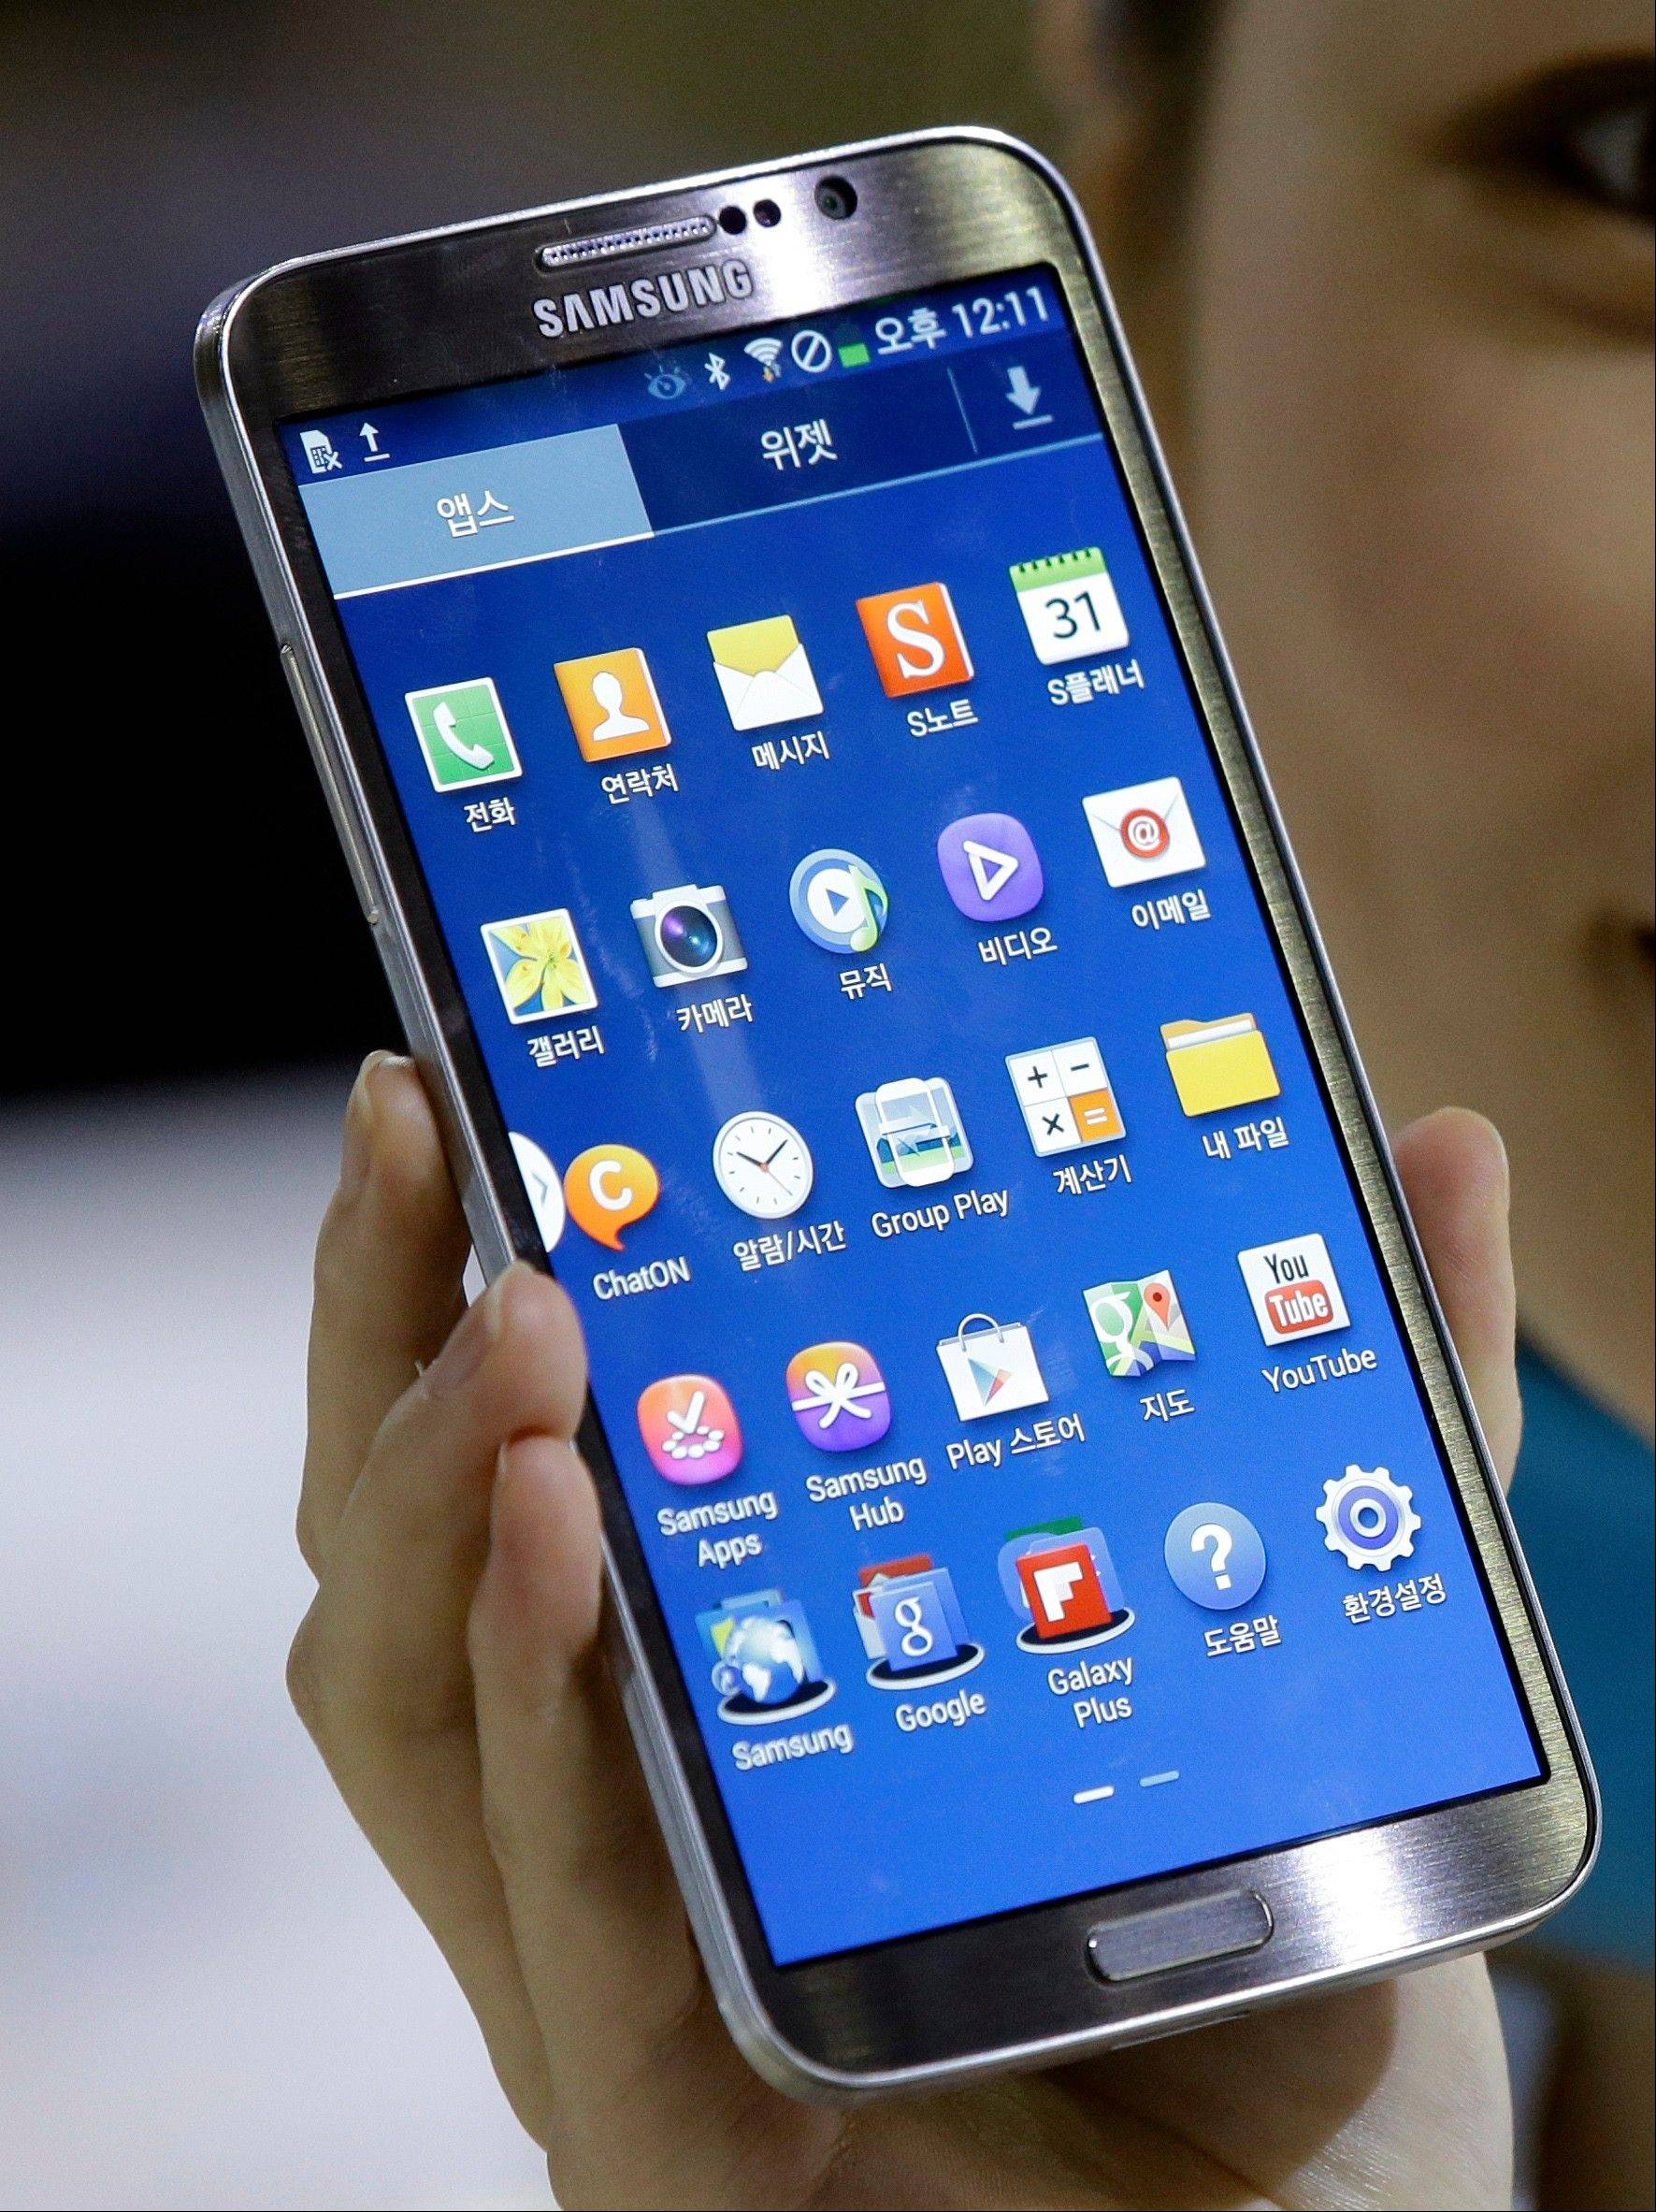 Samsung Electronics said it will release a smartphone with a curved display and a $1,000 price tag. The Galaxy Round has a curved 5.7-inch (14.5 cm) screen using advanced display technology called organic light-emitting diode, or OLED, technology. The Korean company said such a curved screen smartphone is the first in the world.